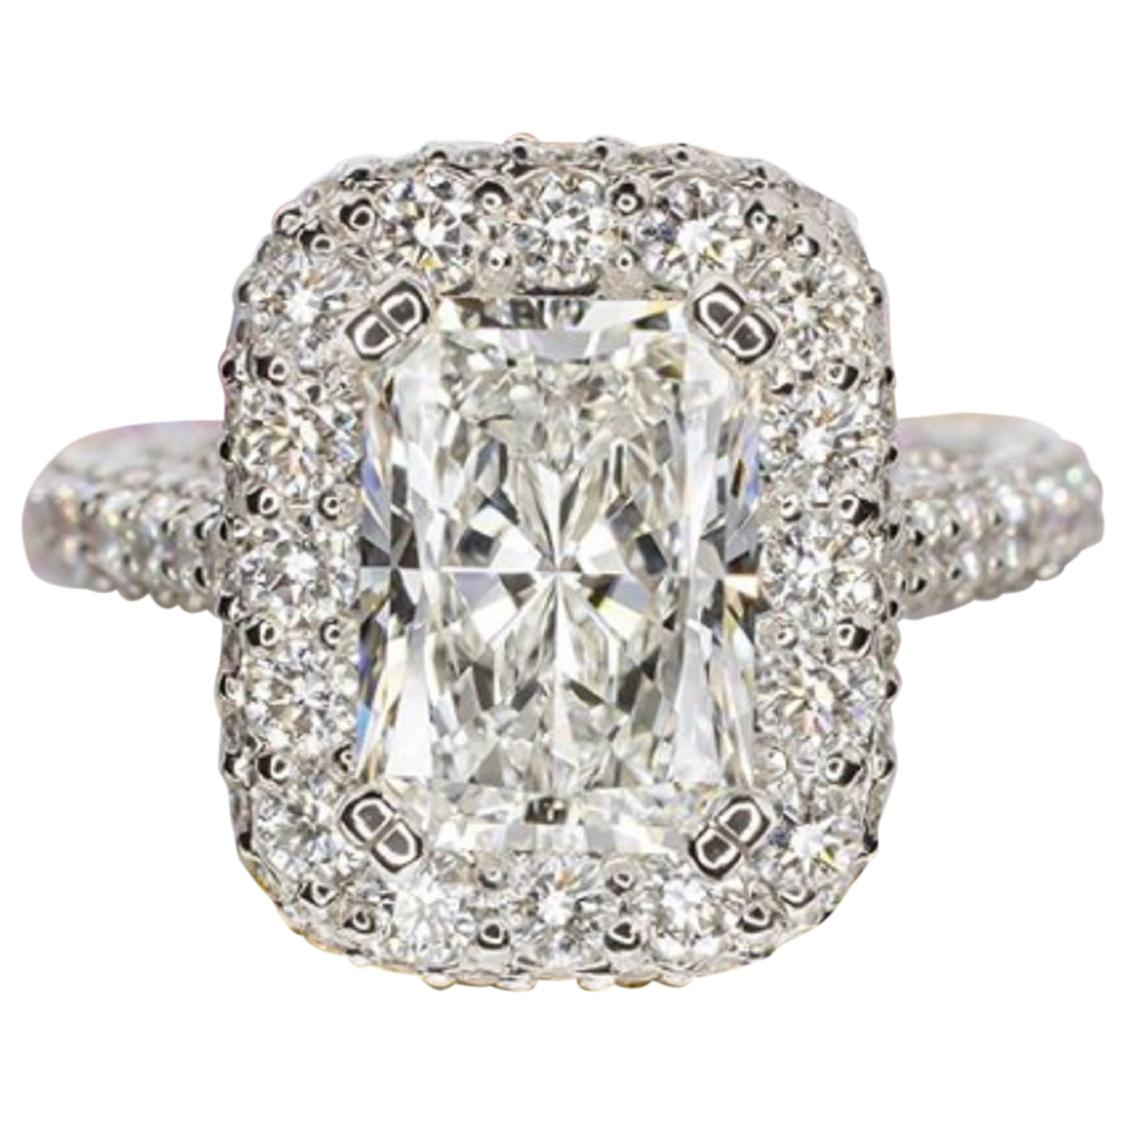 GIA Certified 6.50 Carat Radiant Cut Diamond Halo Ring